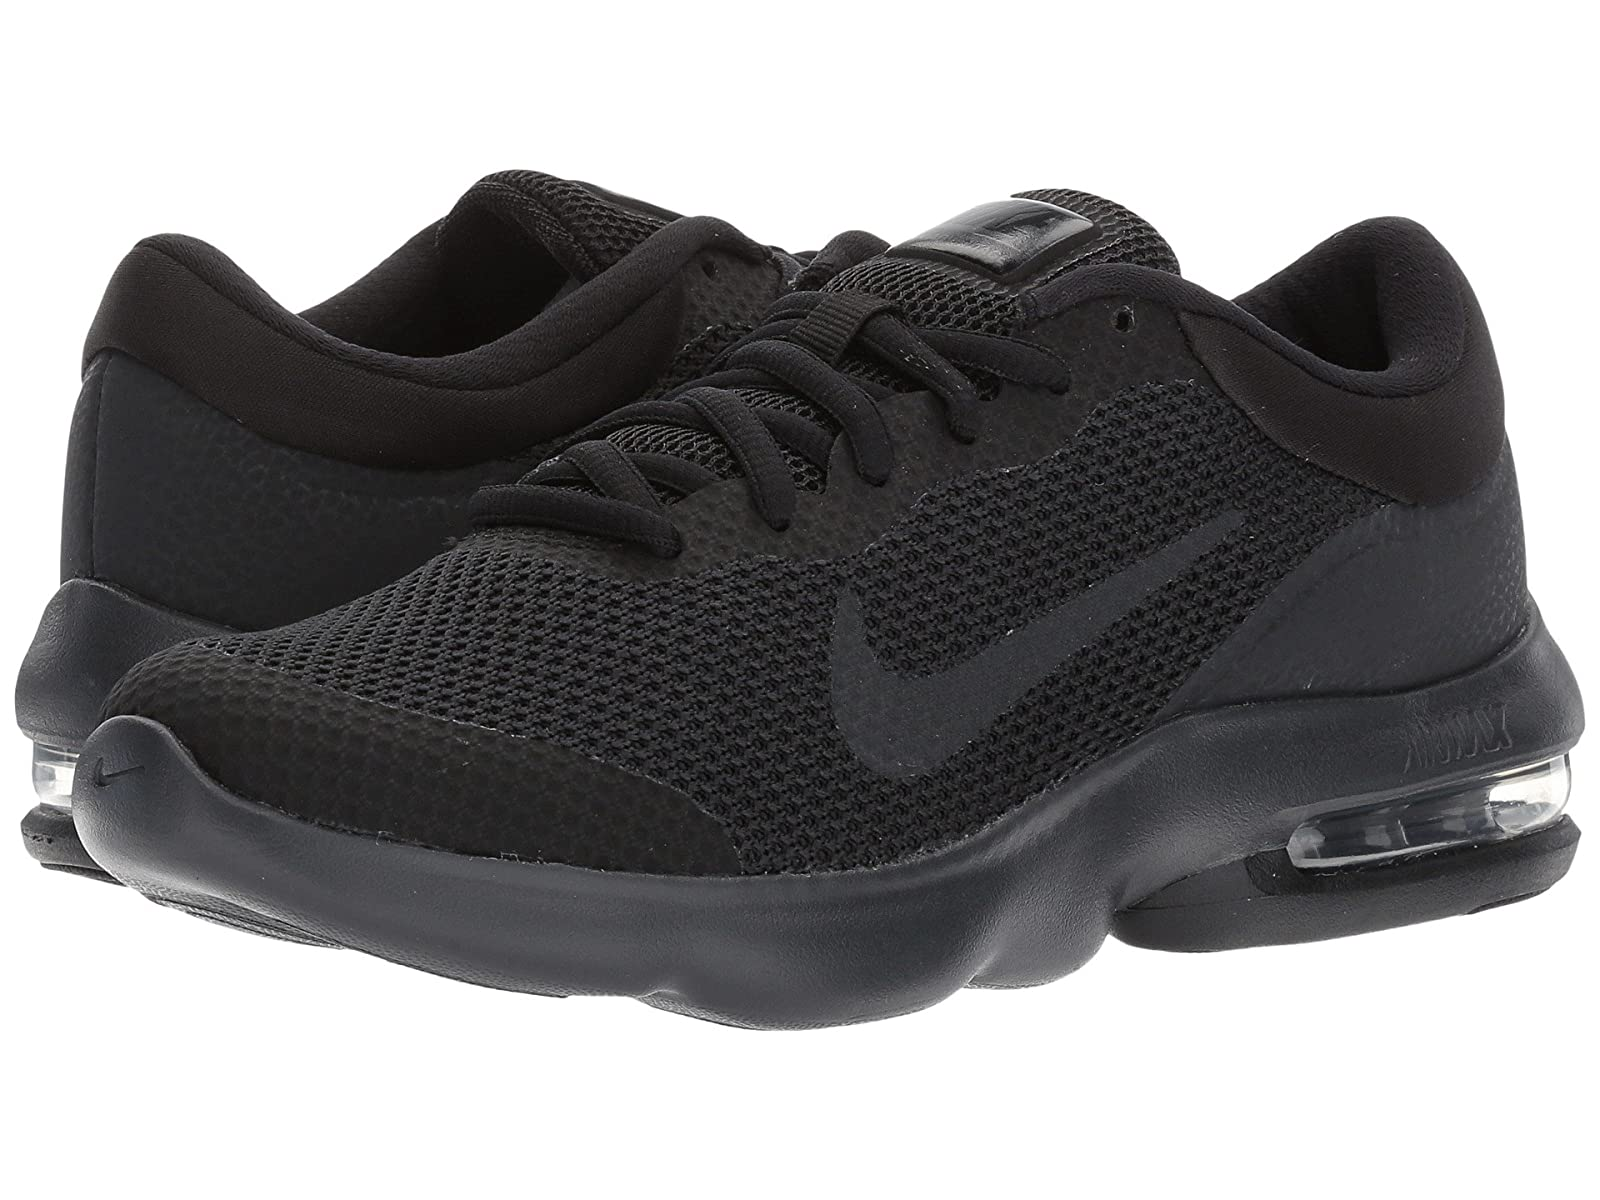 Nike Air Max AdvantageAtmospheric grades have affordable shoes